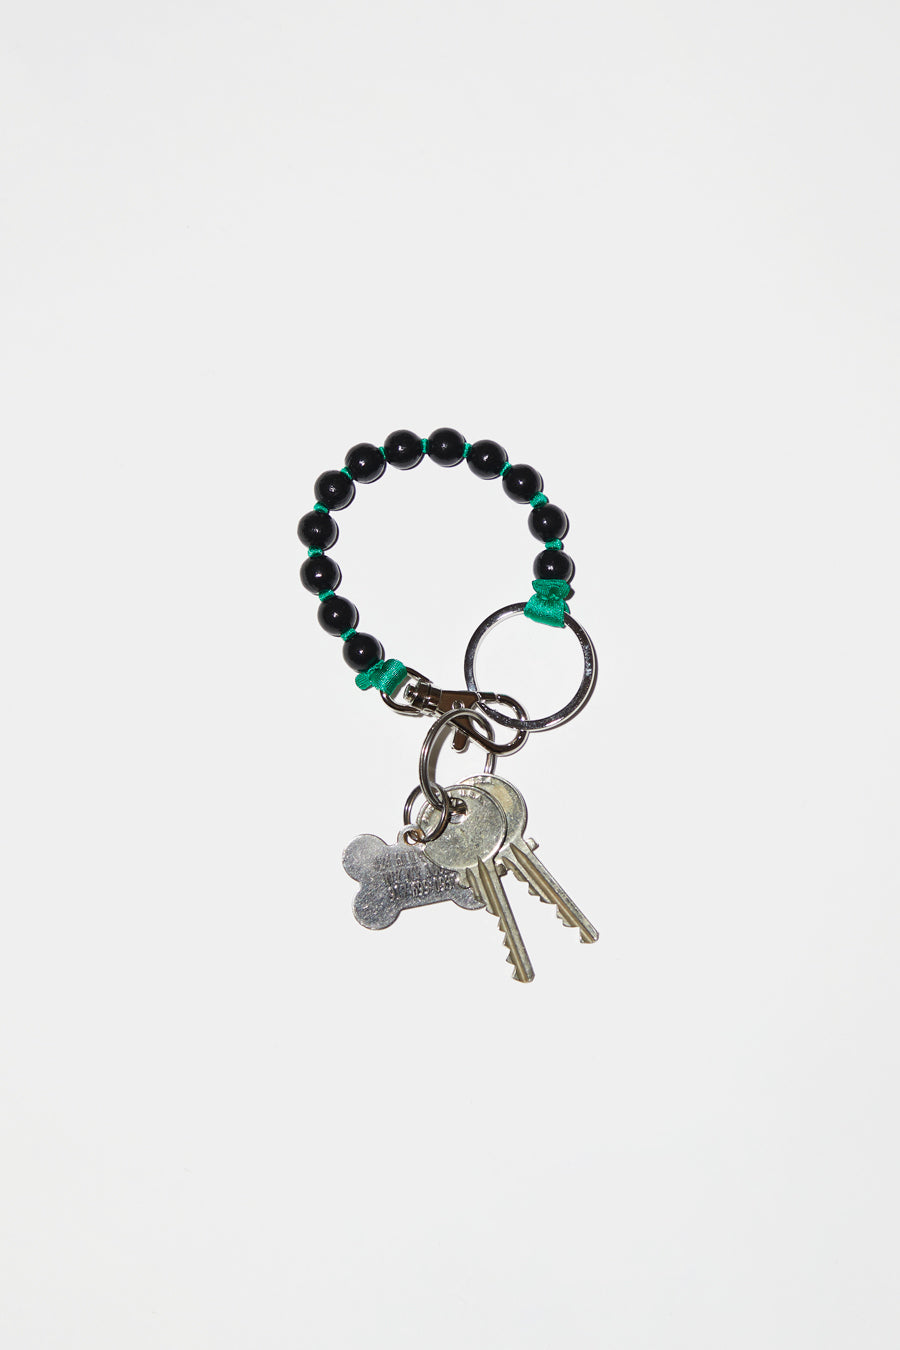 Ina Seifart Perlen Short Keyholder in Black with Green Thread